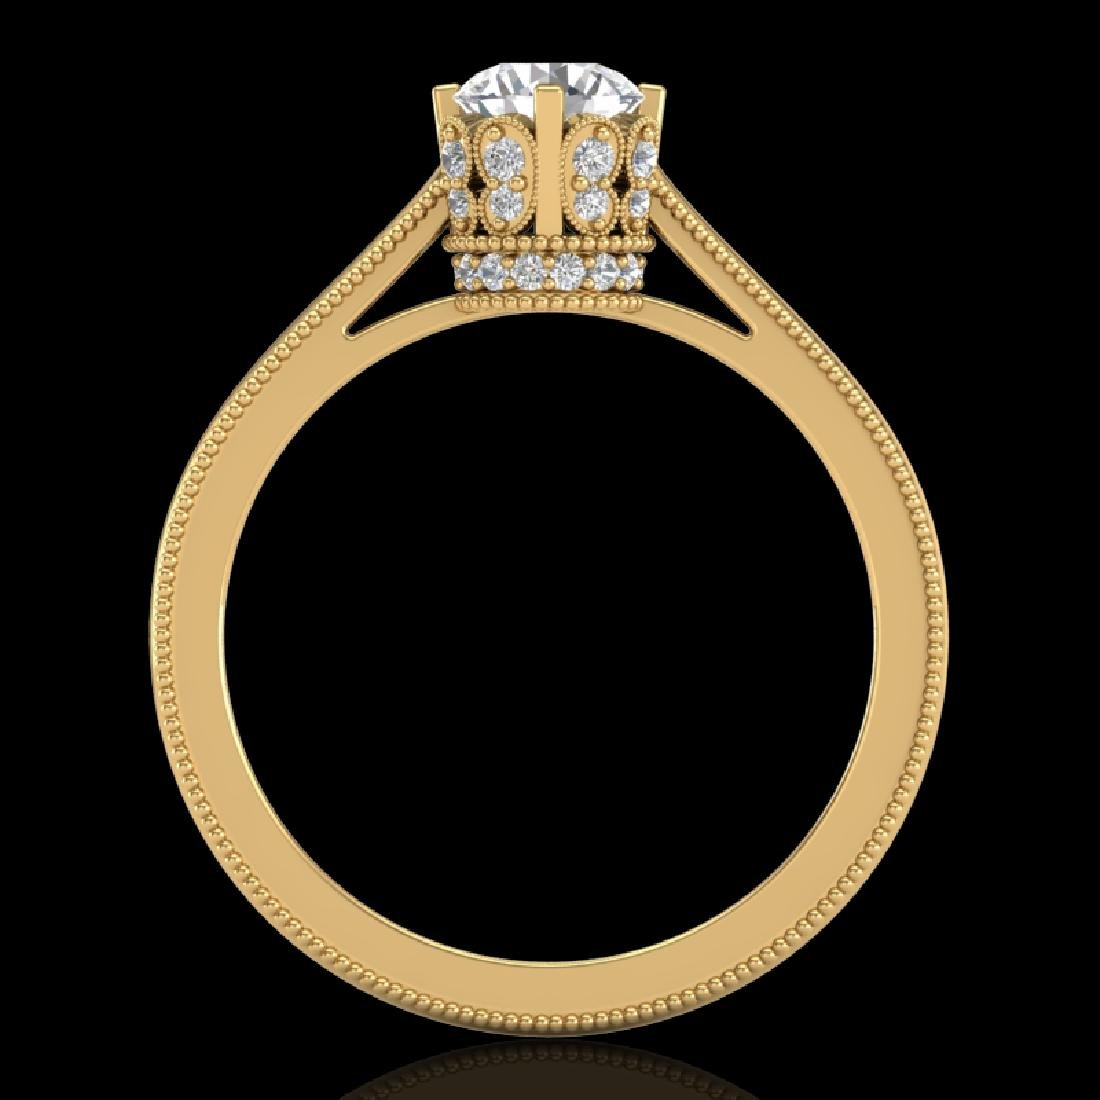 0.81 CTW VS/SI Diamond Art Deco Ring 18K Yellow Gold - 2